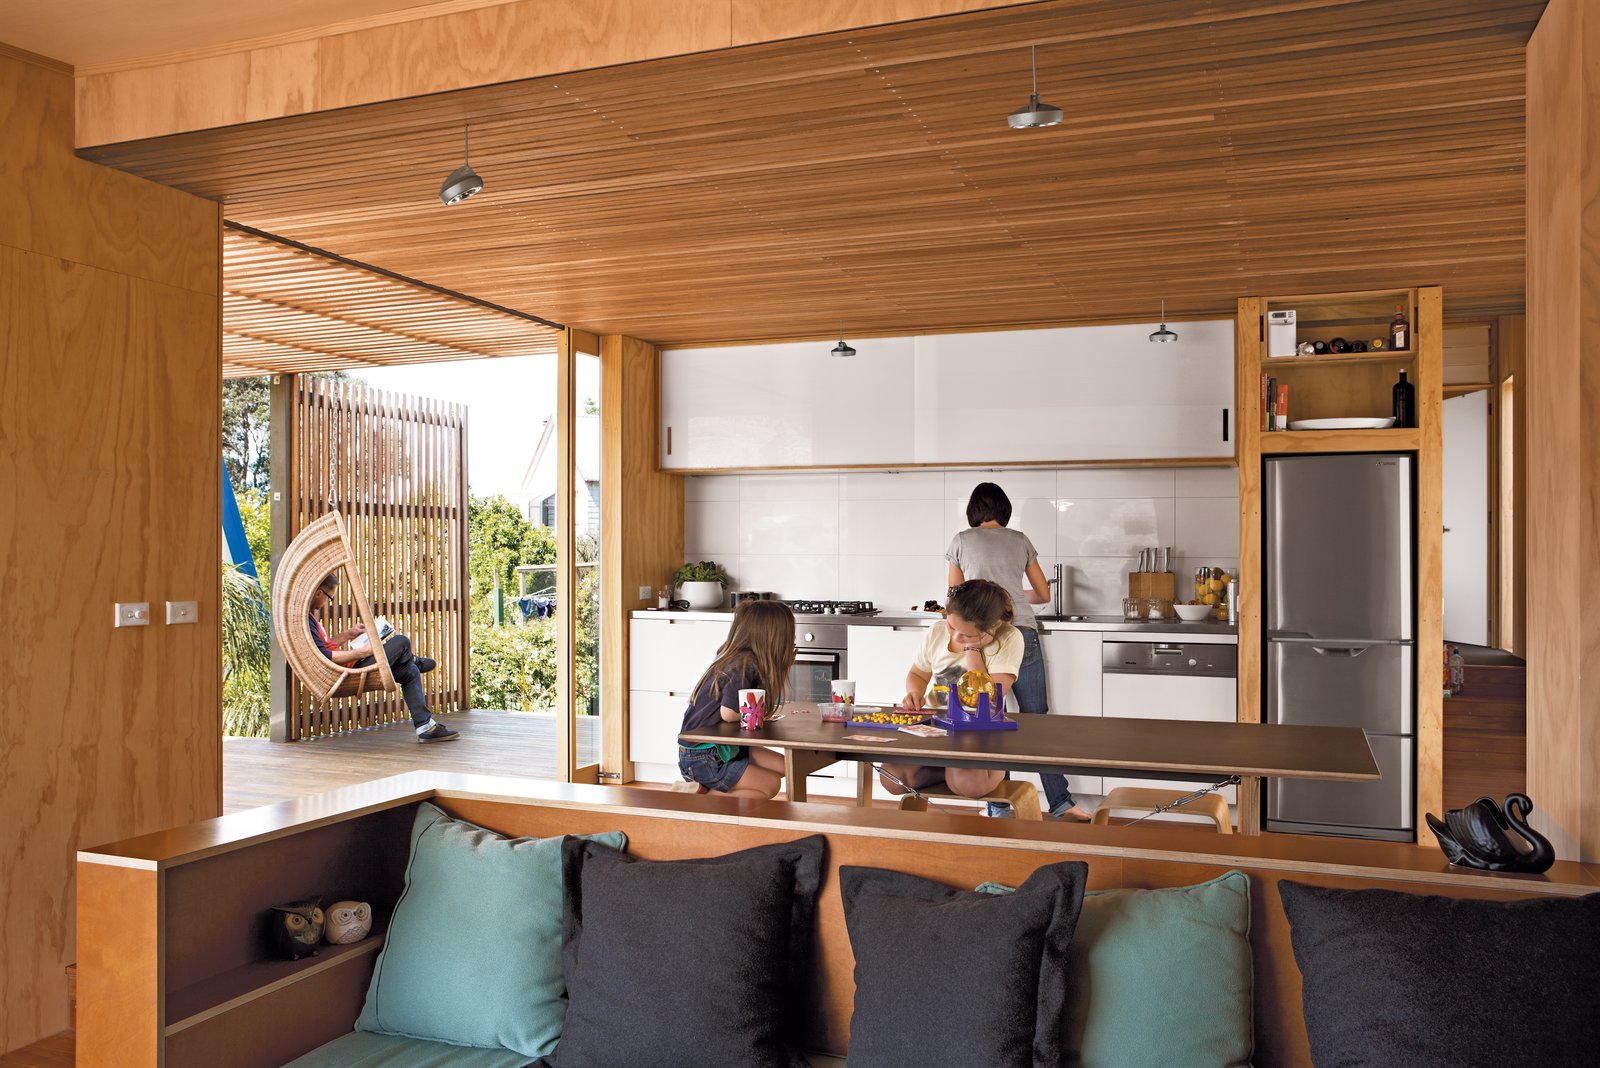 A dishwasher by Miele, refrigerator by Mitsubishi, and Baumatic cooktop are nestled into the custom kitchen, which features laminate-covered cabinets and a stainless steel countertop.  Photo 4 of 7 in A Compact Prefab Vacation Home